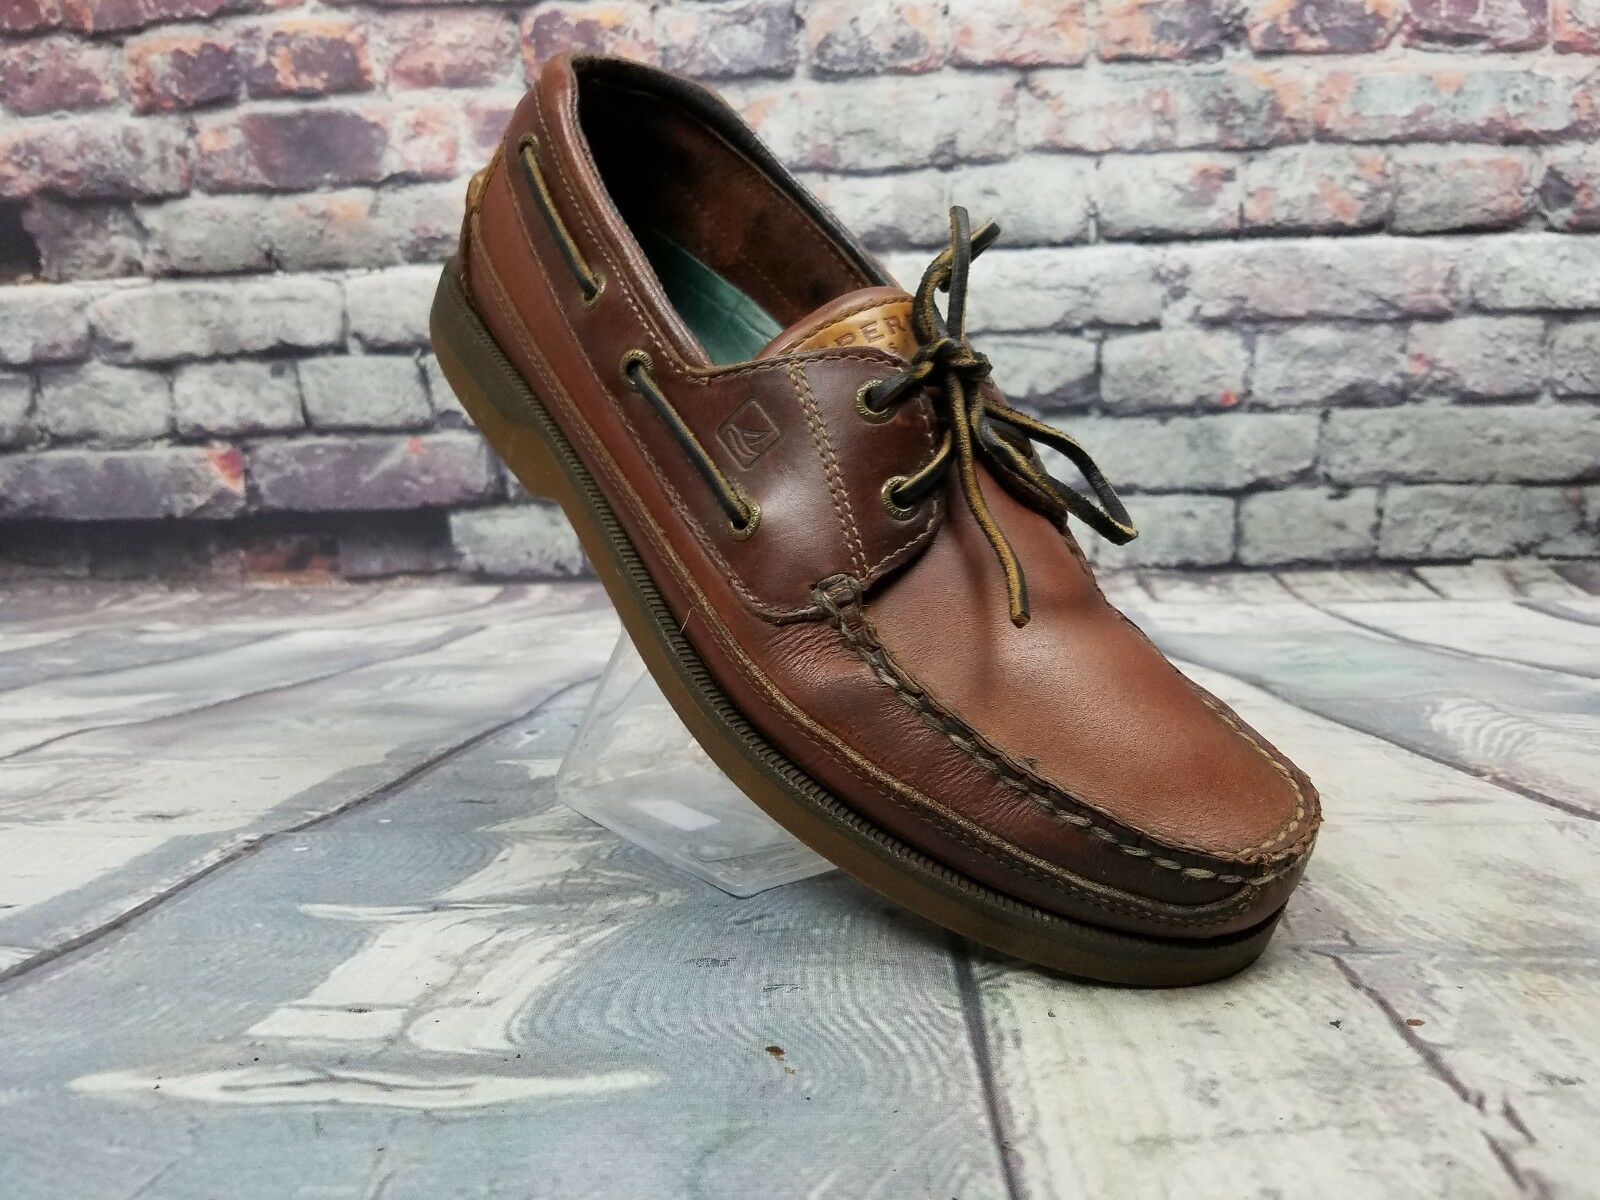 Men's SPERRY Top Sider shoes Billfish Loafers Brown Leather lace up Sz 9.5 M